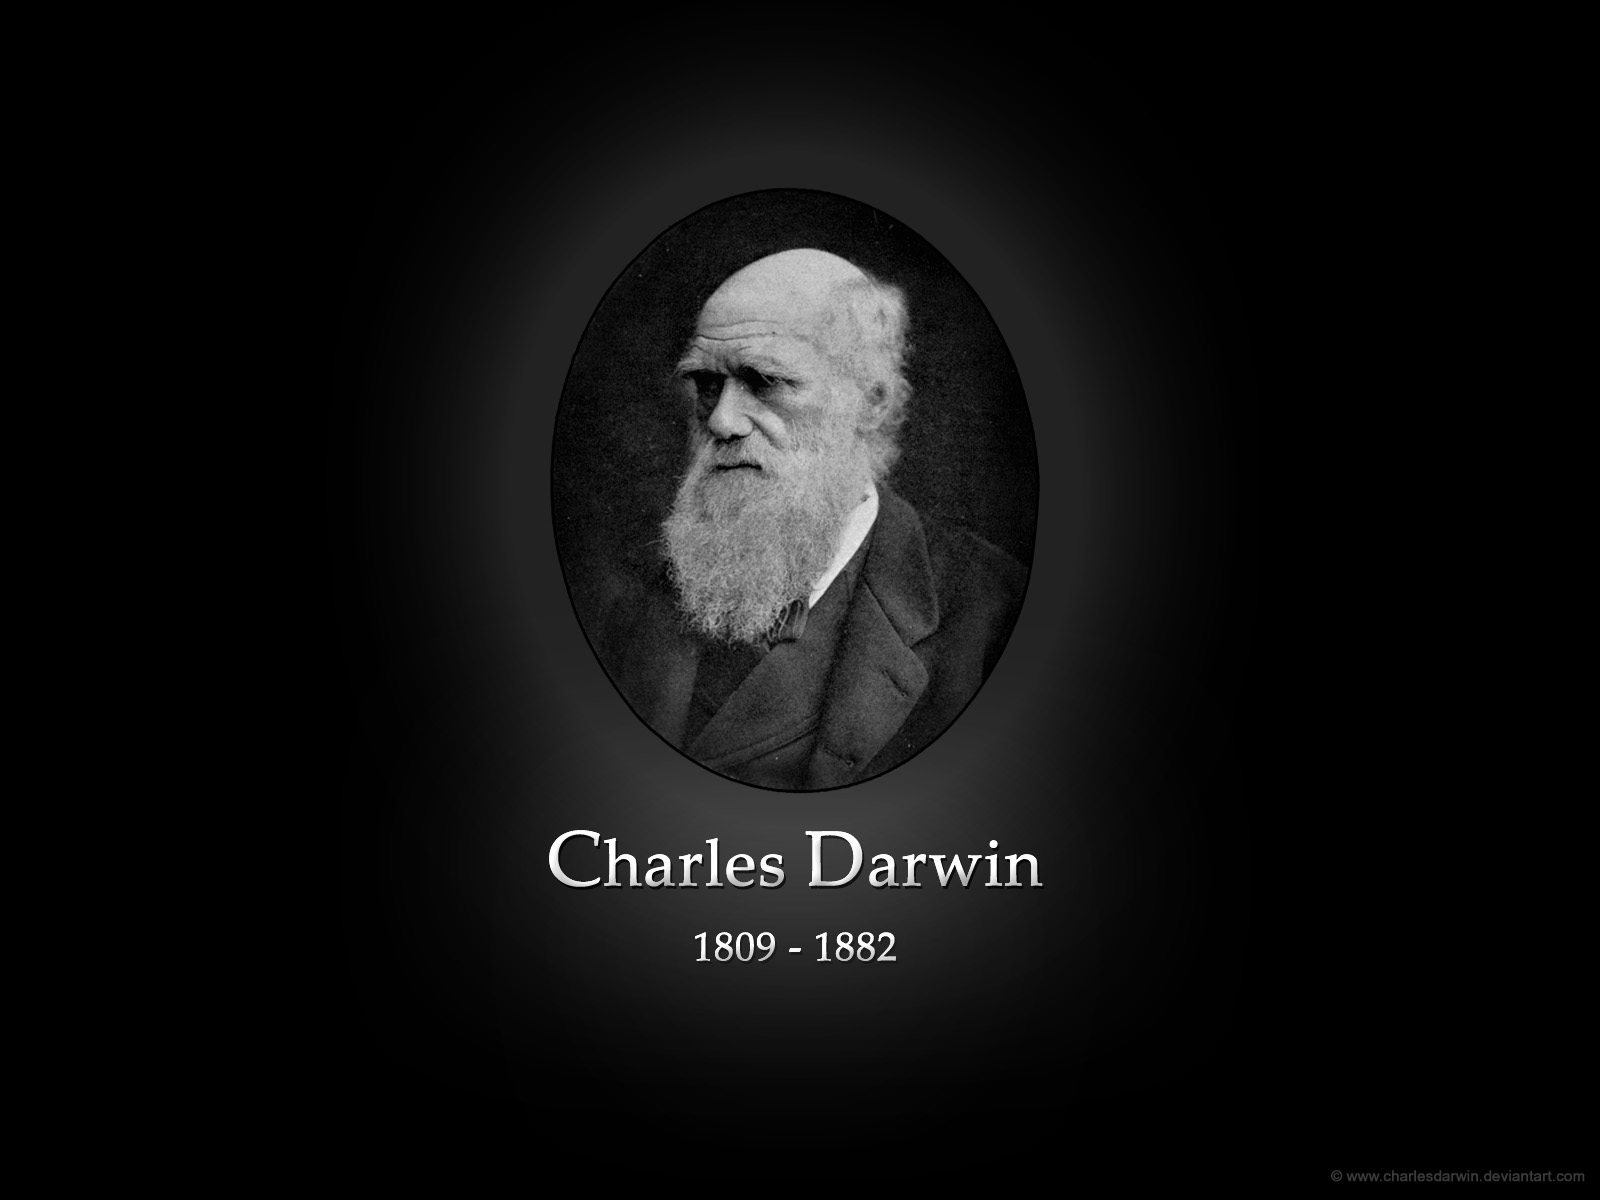 a life history of charles darwin the biologist History charles darwin was a british naturalist who presented compelling evidence that all life on earth had evolved from common ancestor his theory of evolution had become widely accepted by the time of death.